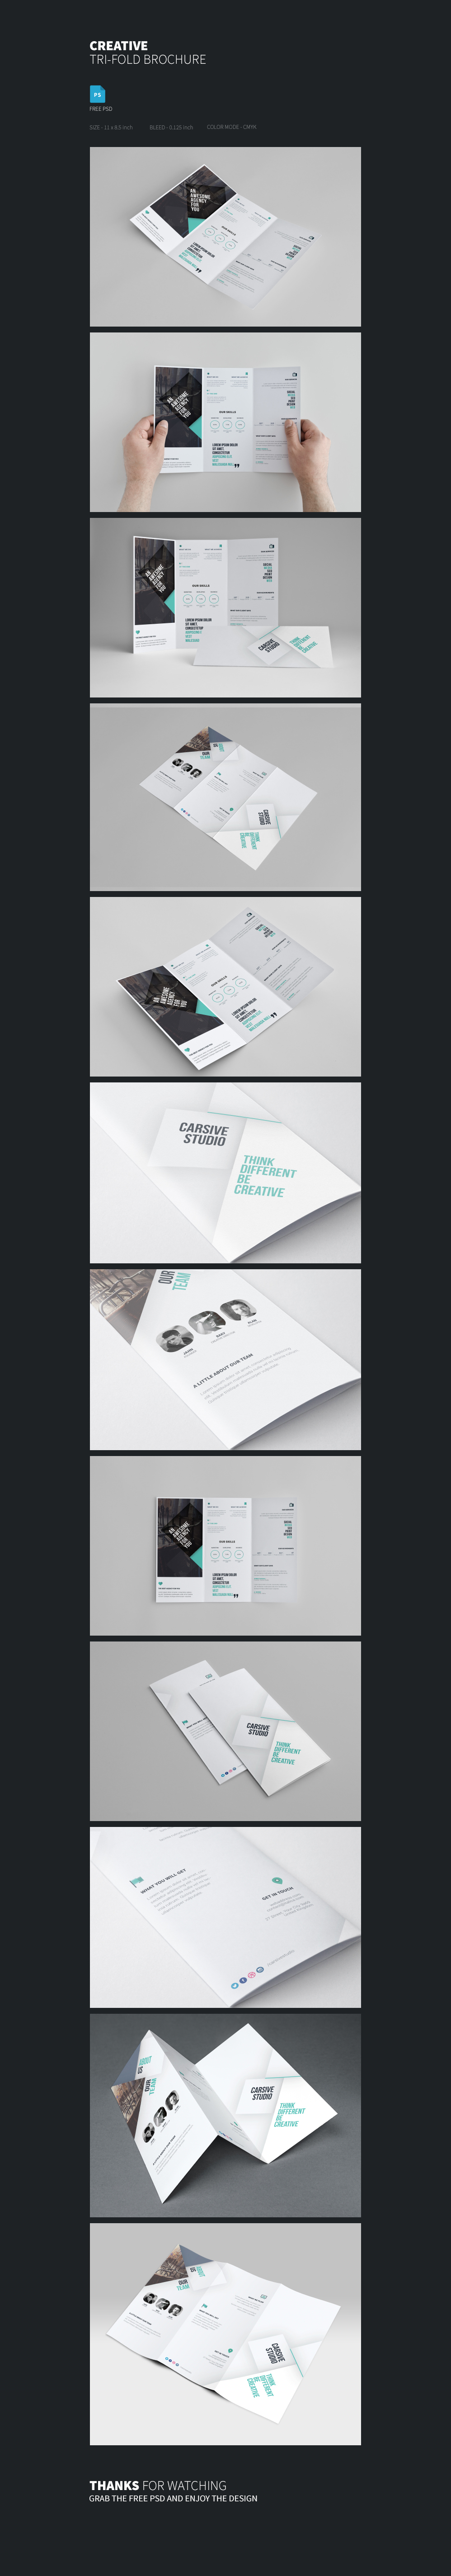 brochure trifold template clean print design sleek blue White awesome freebie psd free download